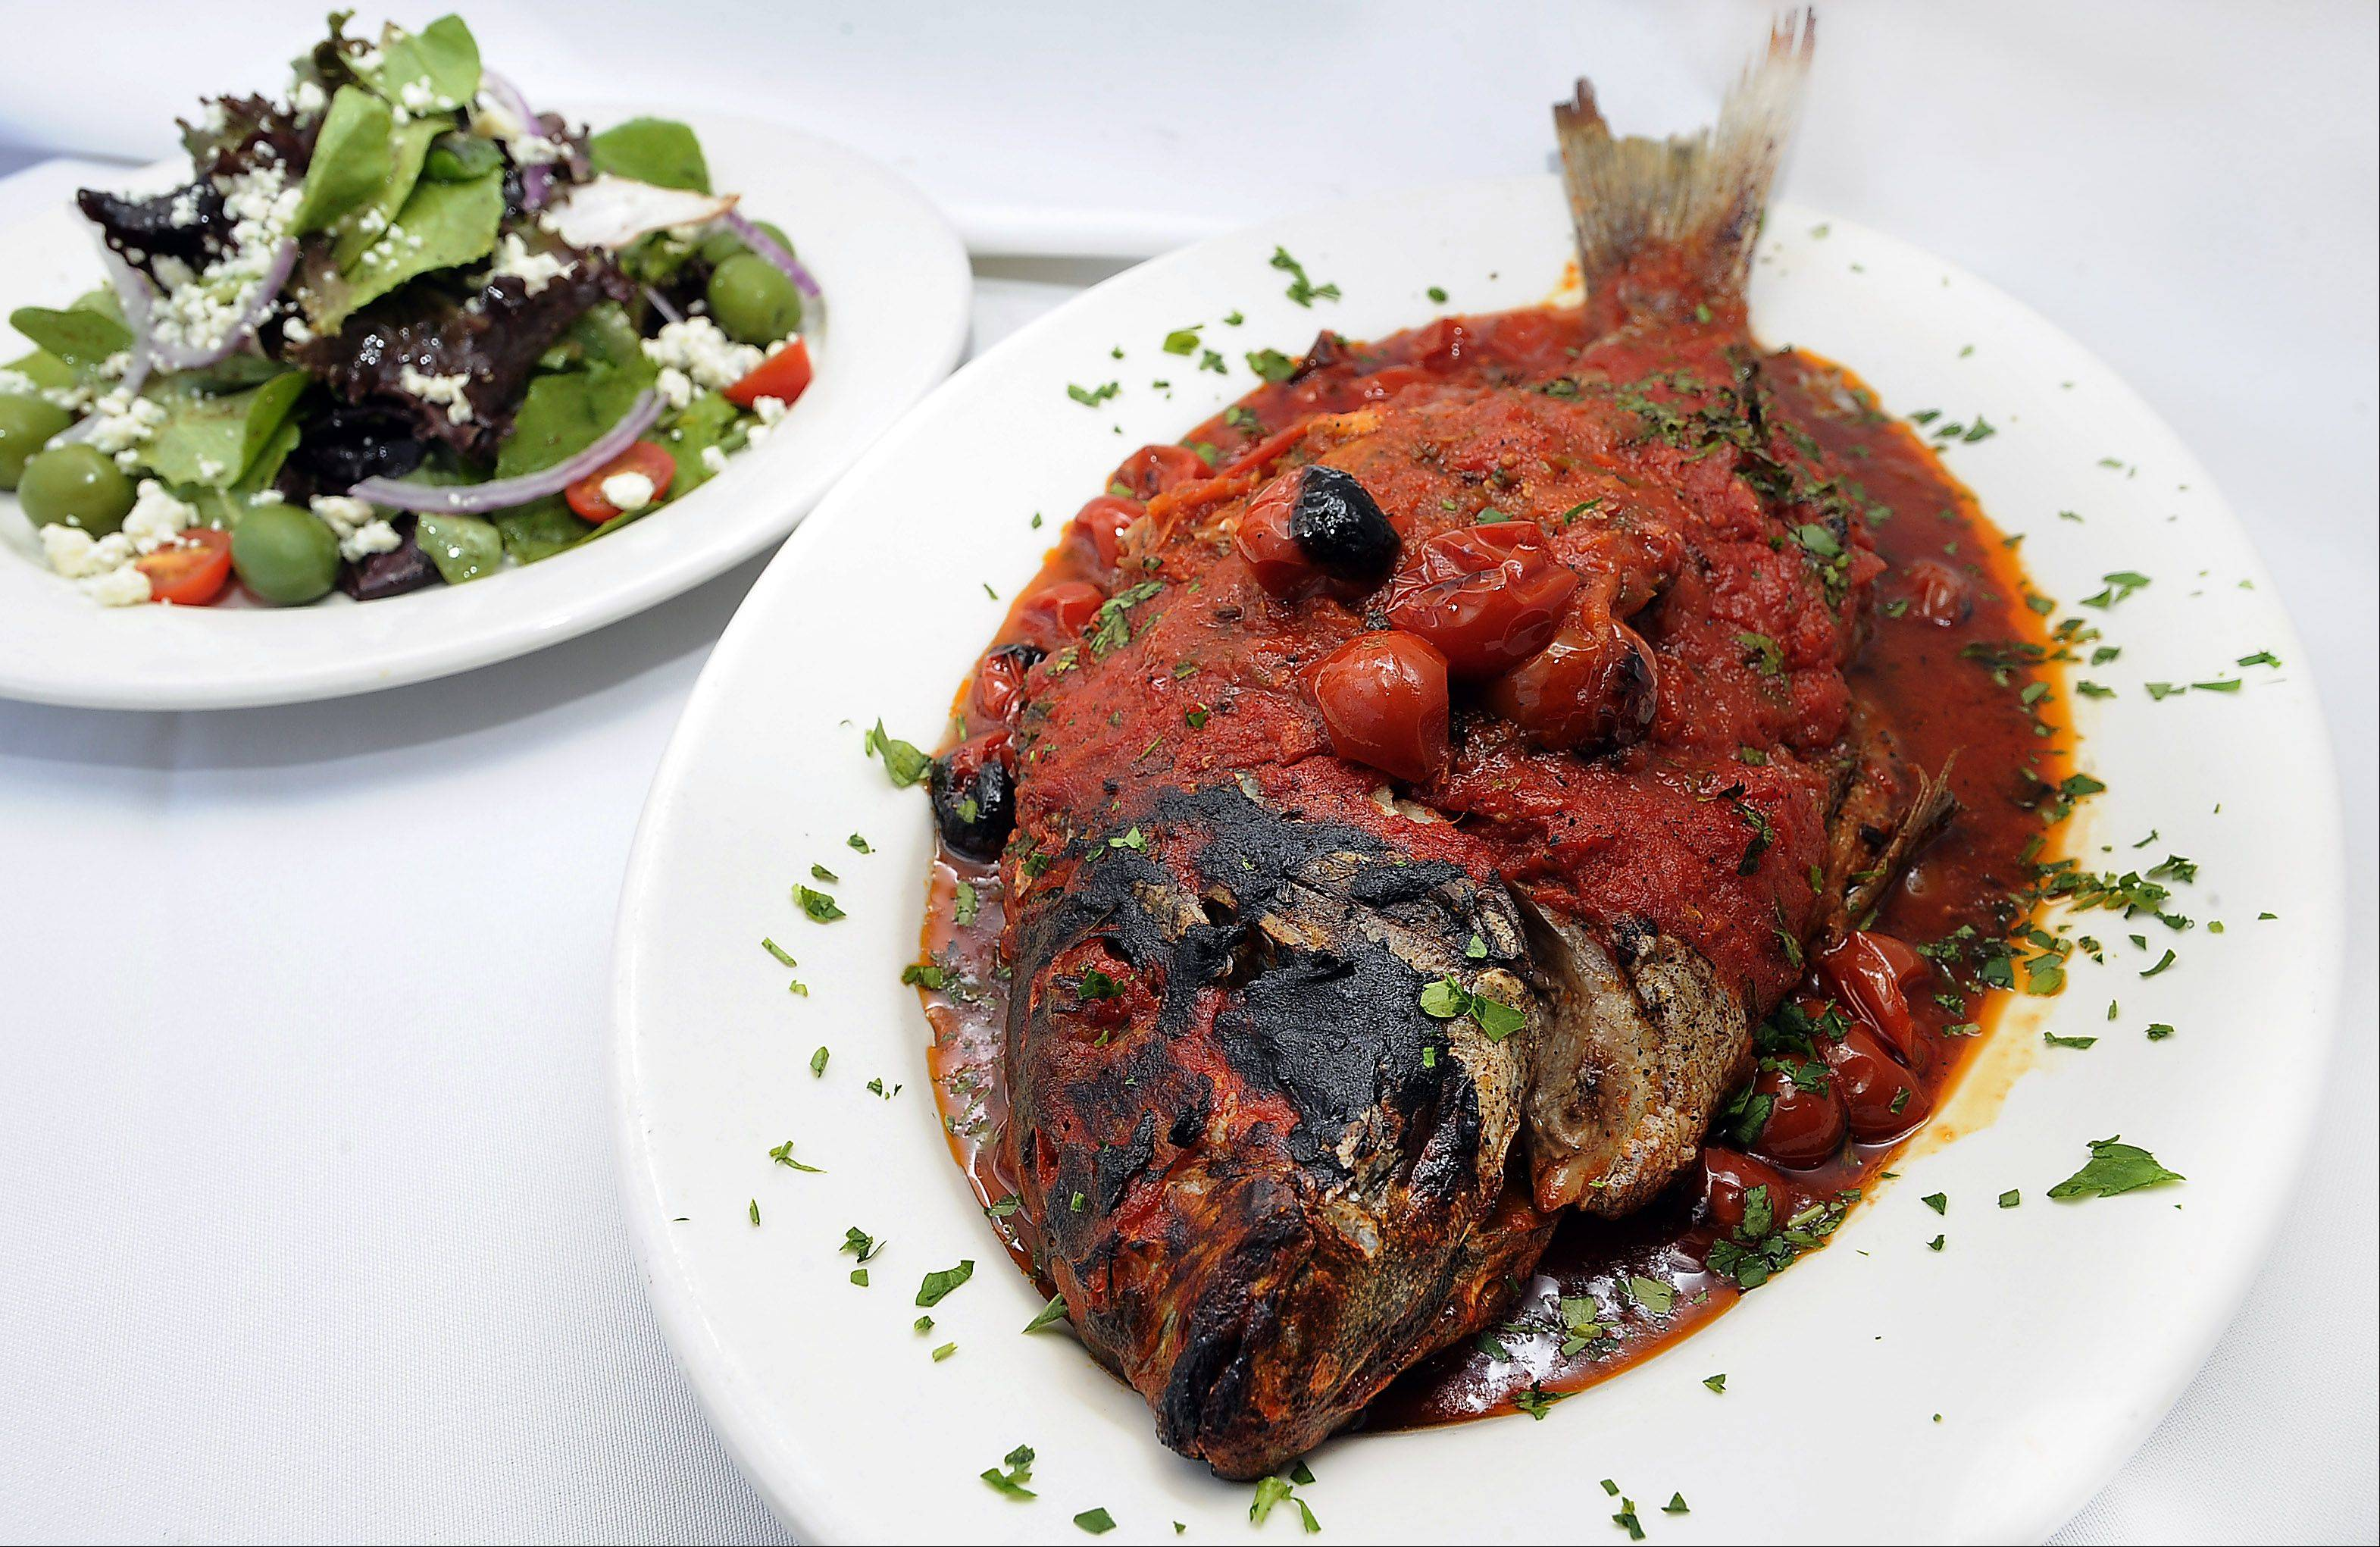 Whole sea bass gets baked with tomatoes at Enzo & Lucia in Long Grove.